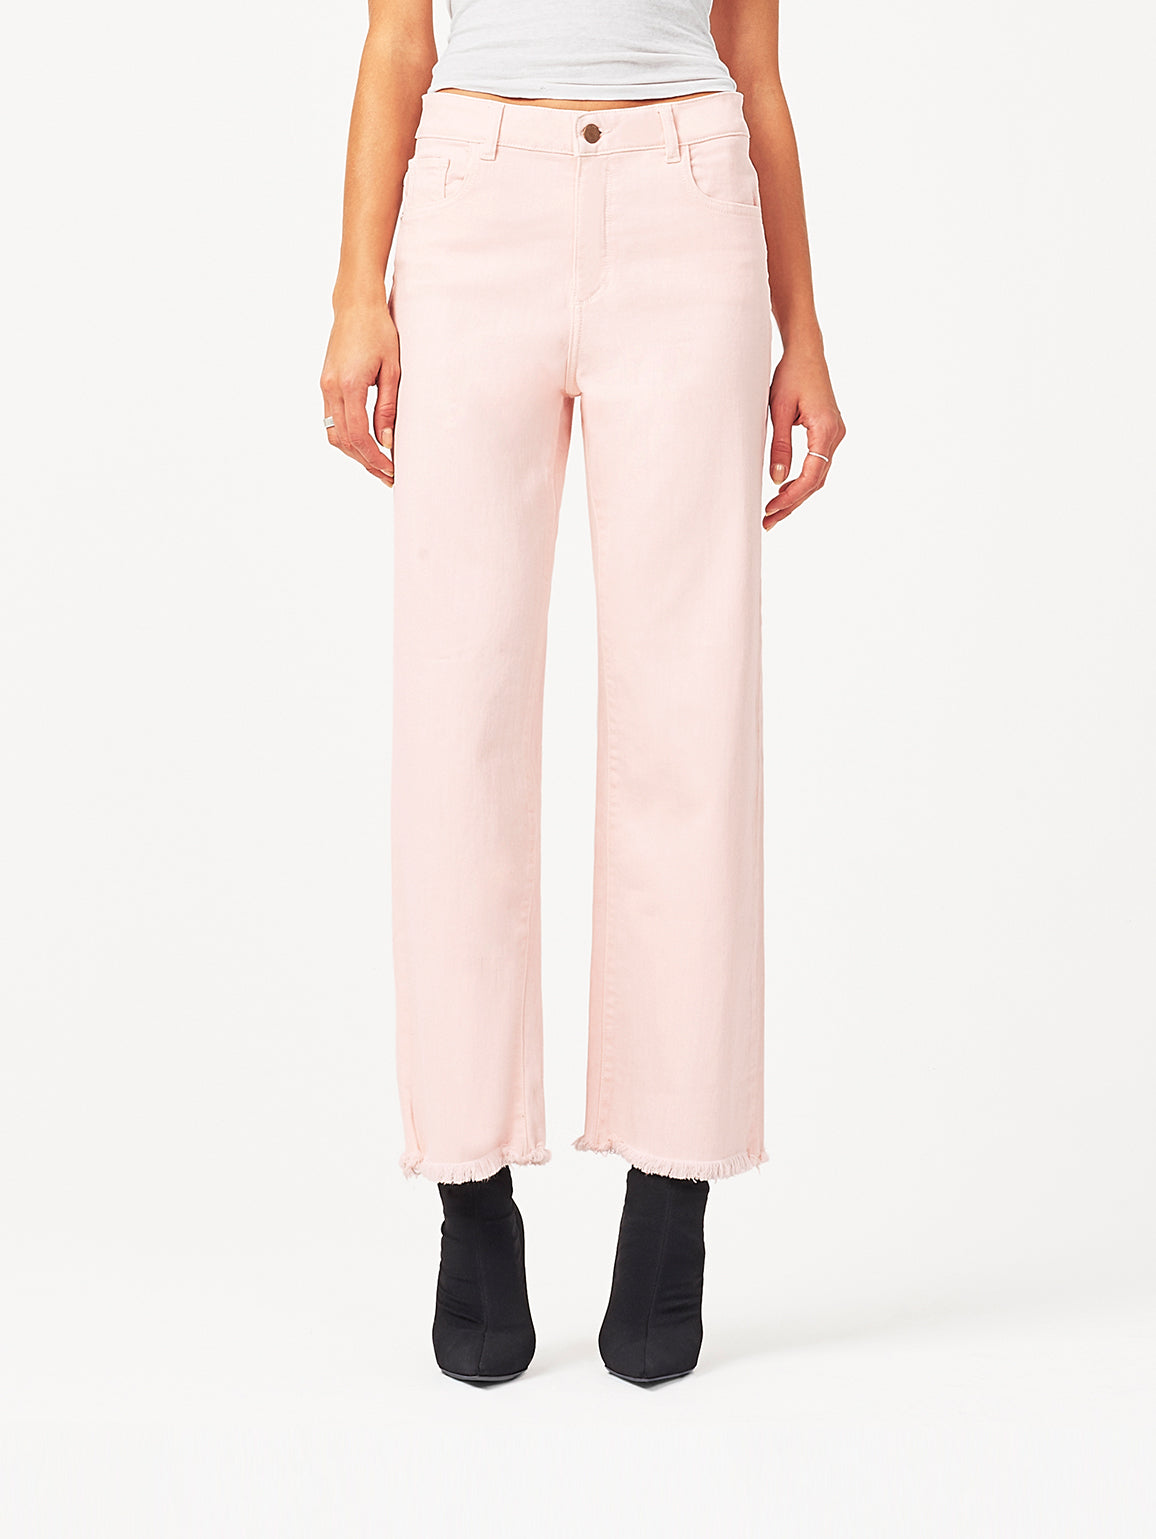 Hepburn High Rise Wide Leg | Blush Pink DL 1961 Denim